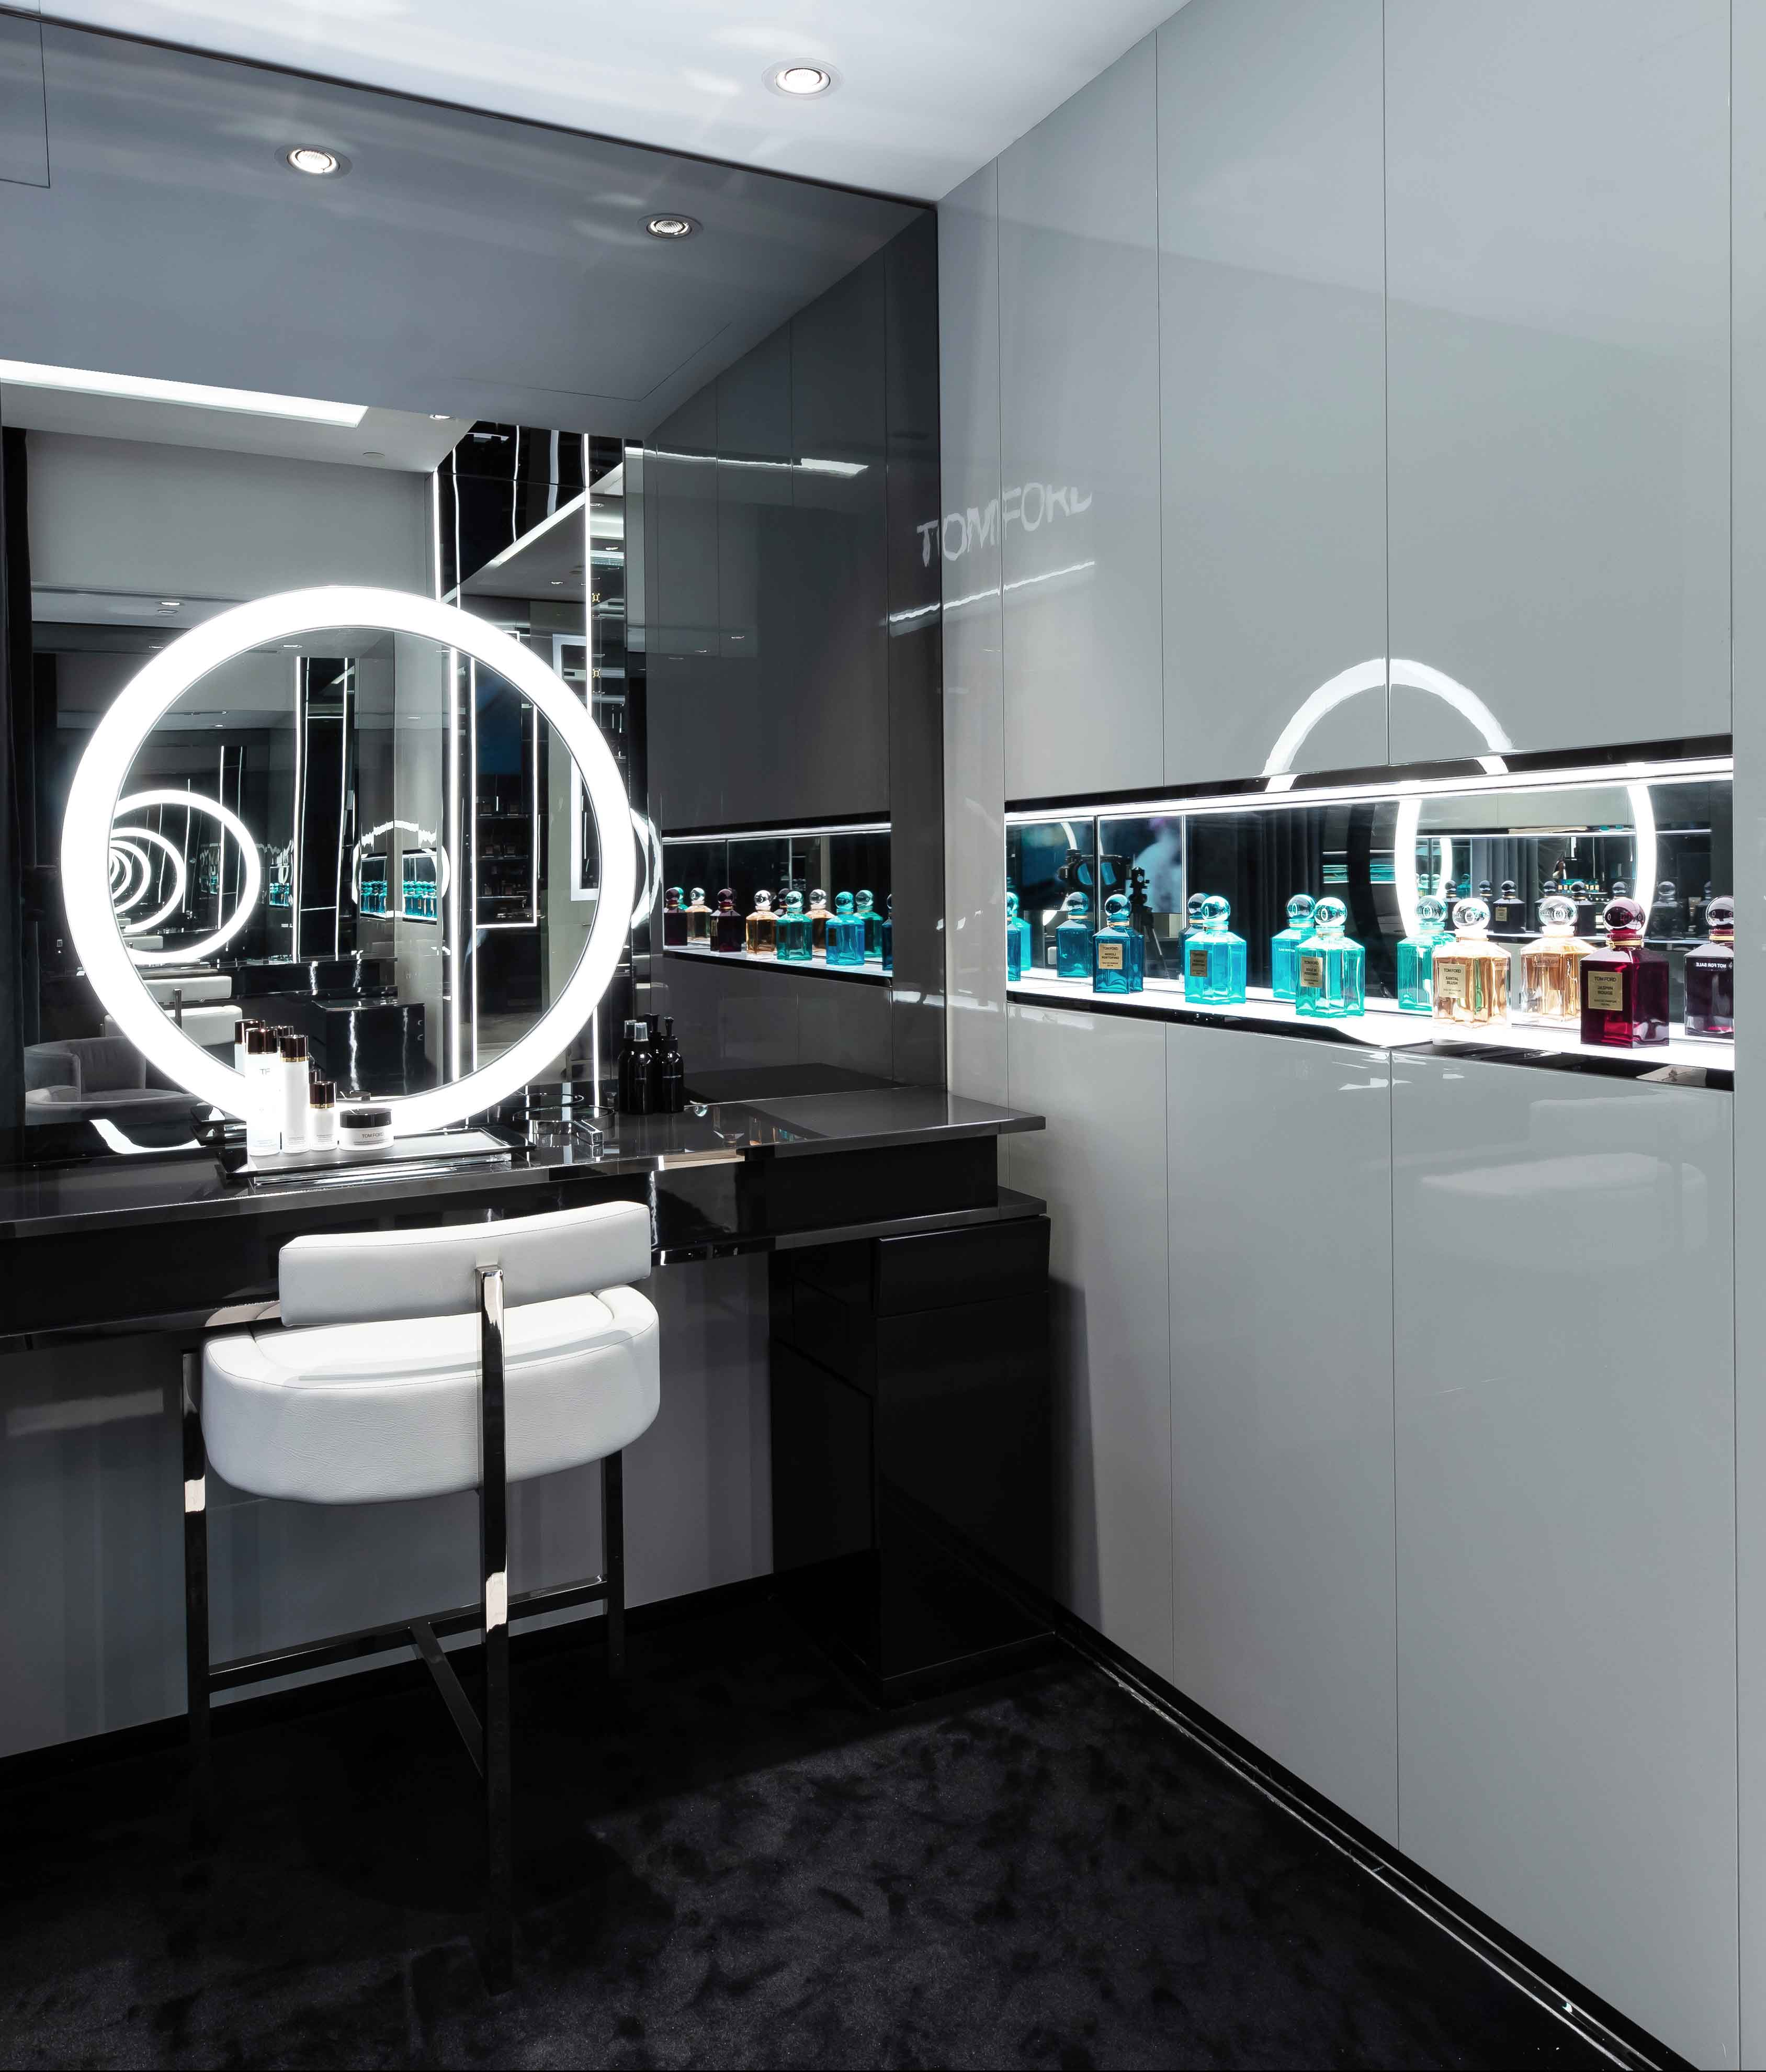 Tom Ford Beauty Now Opens In Kuala Lumpur   Diva in Me 25cbd6ca5f00